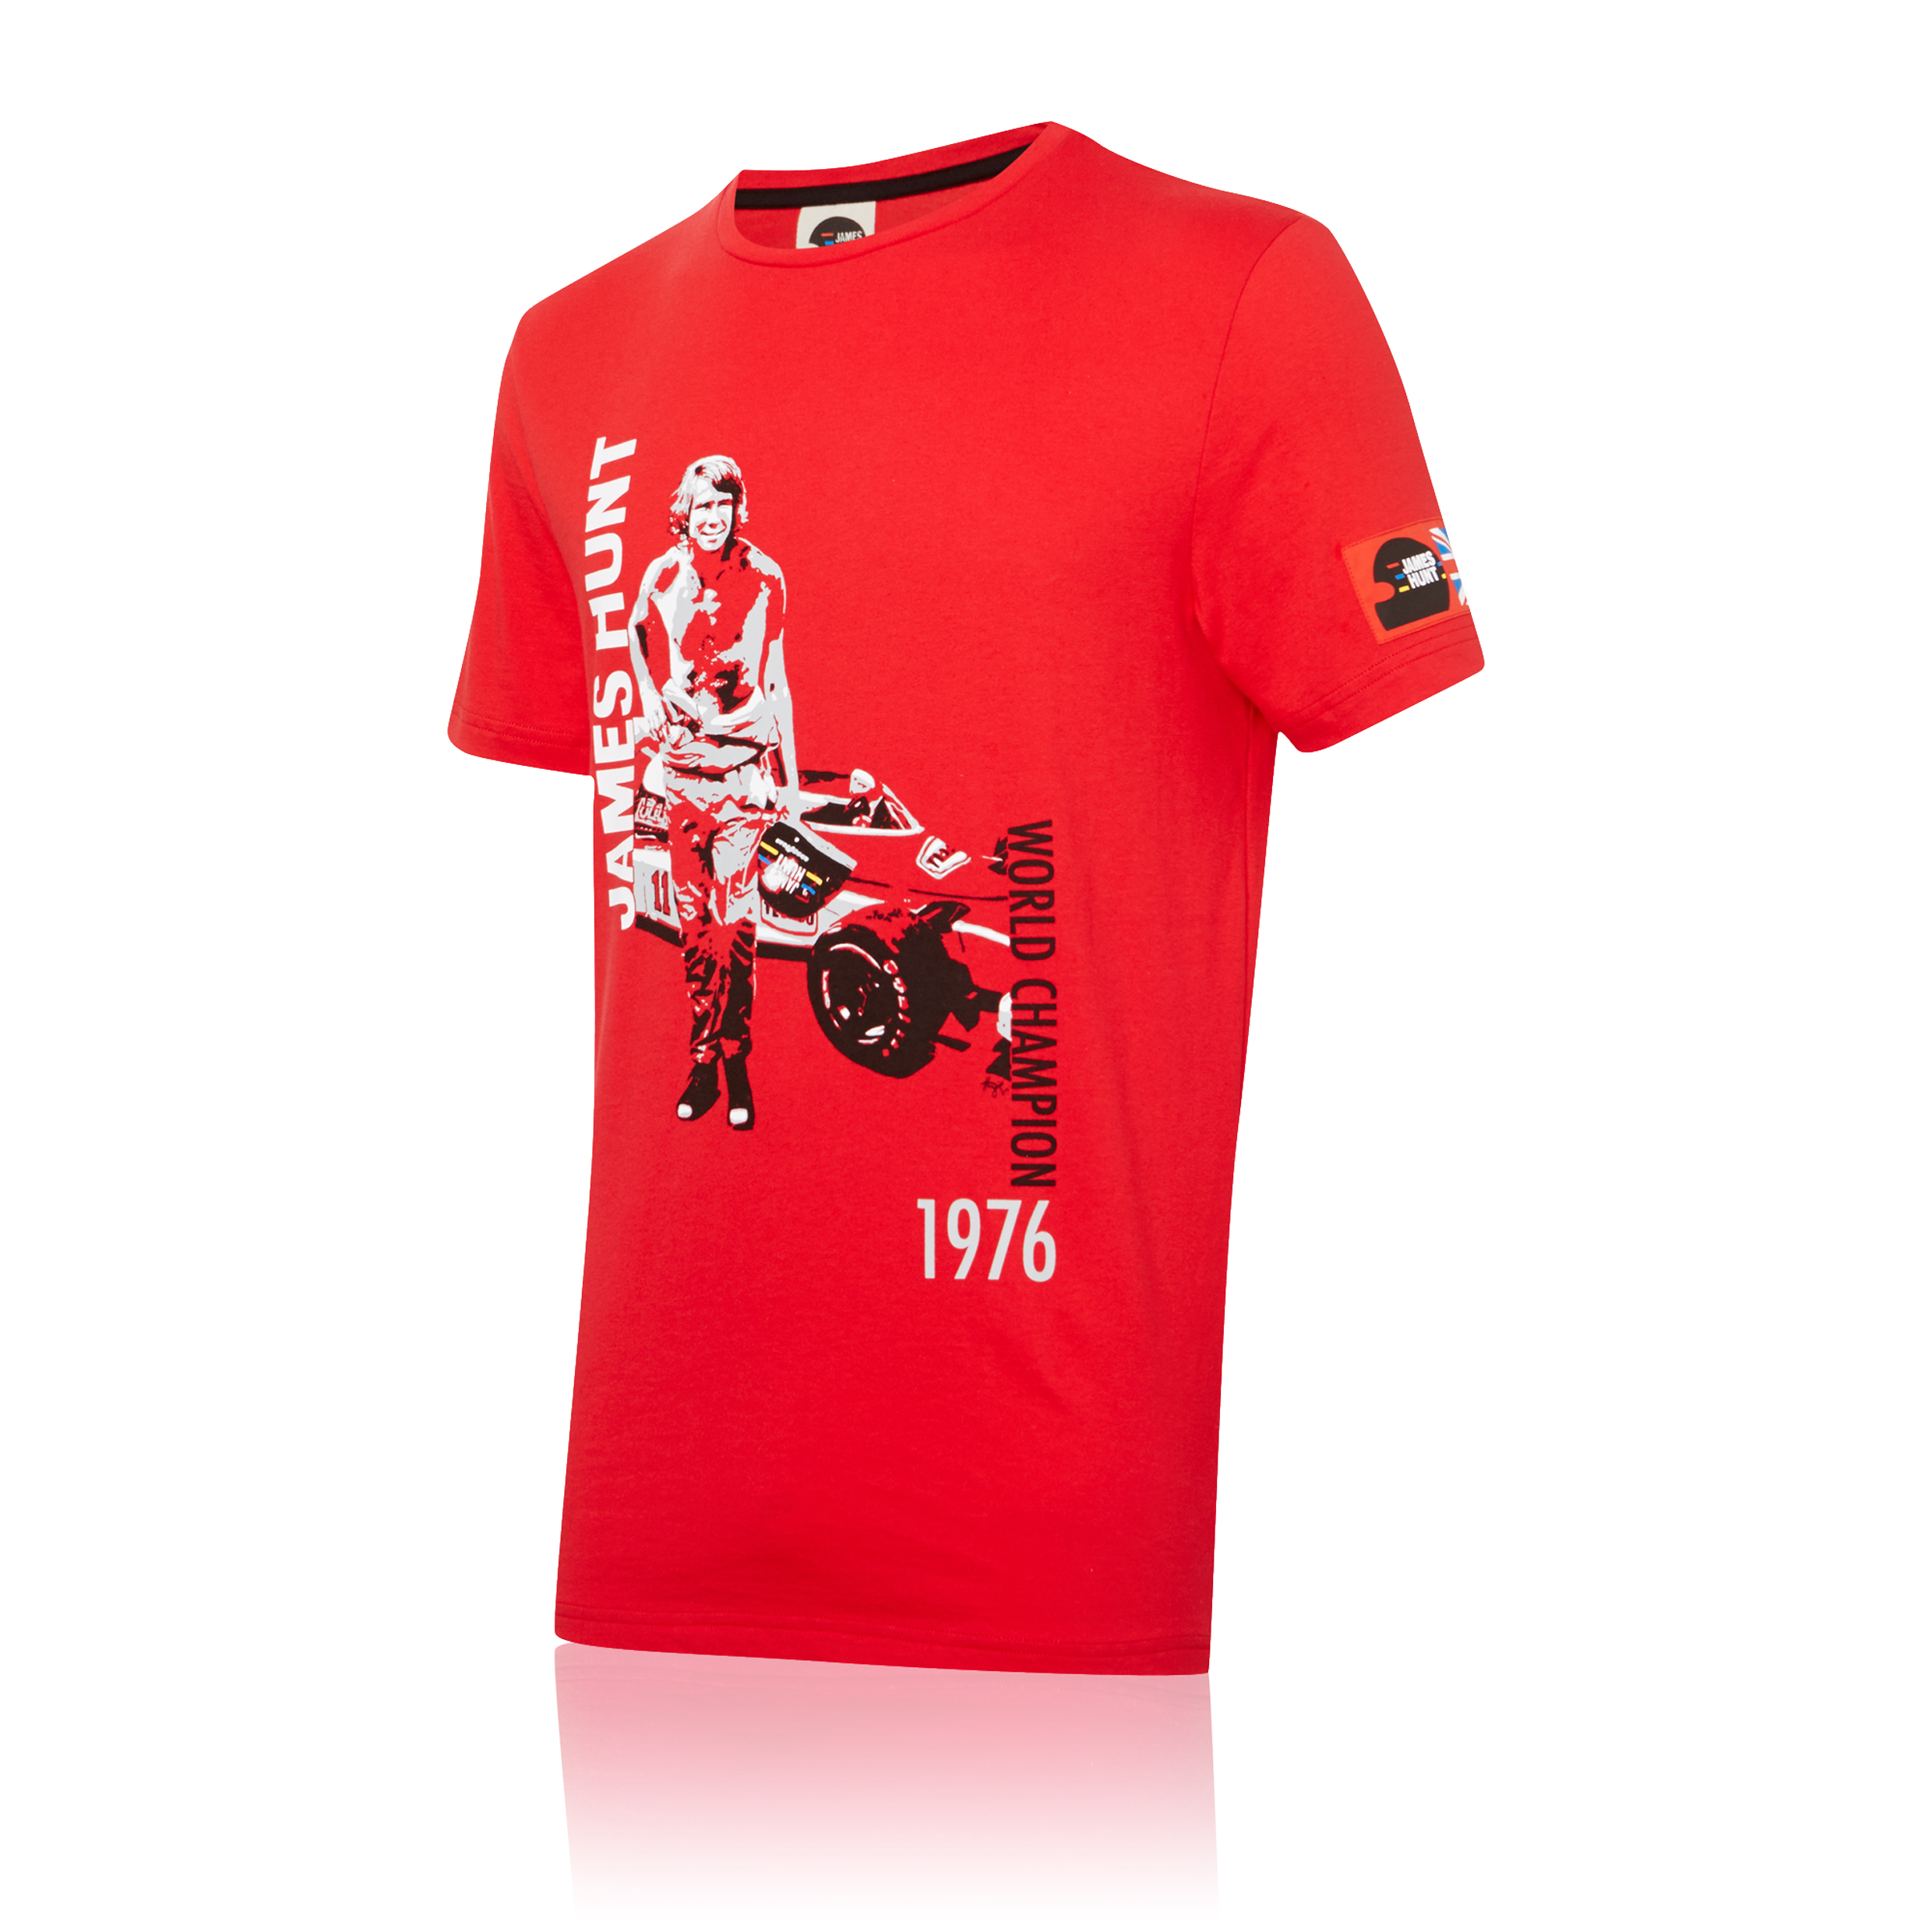 Formula One James Hunt Racing Champion T-shirt